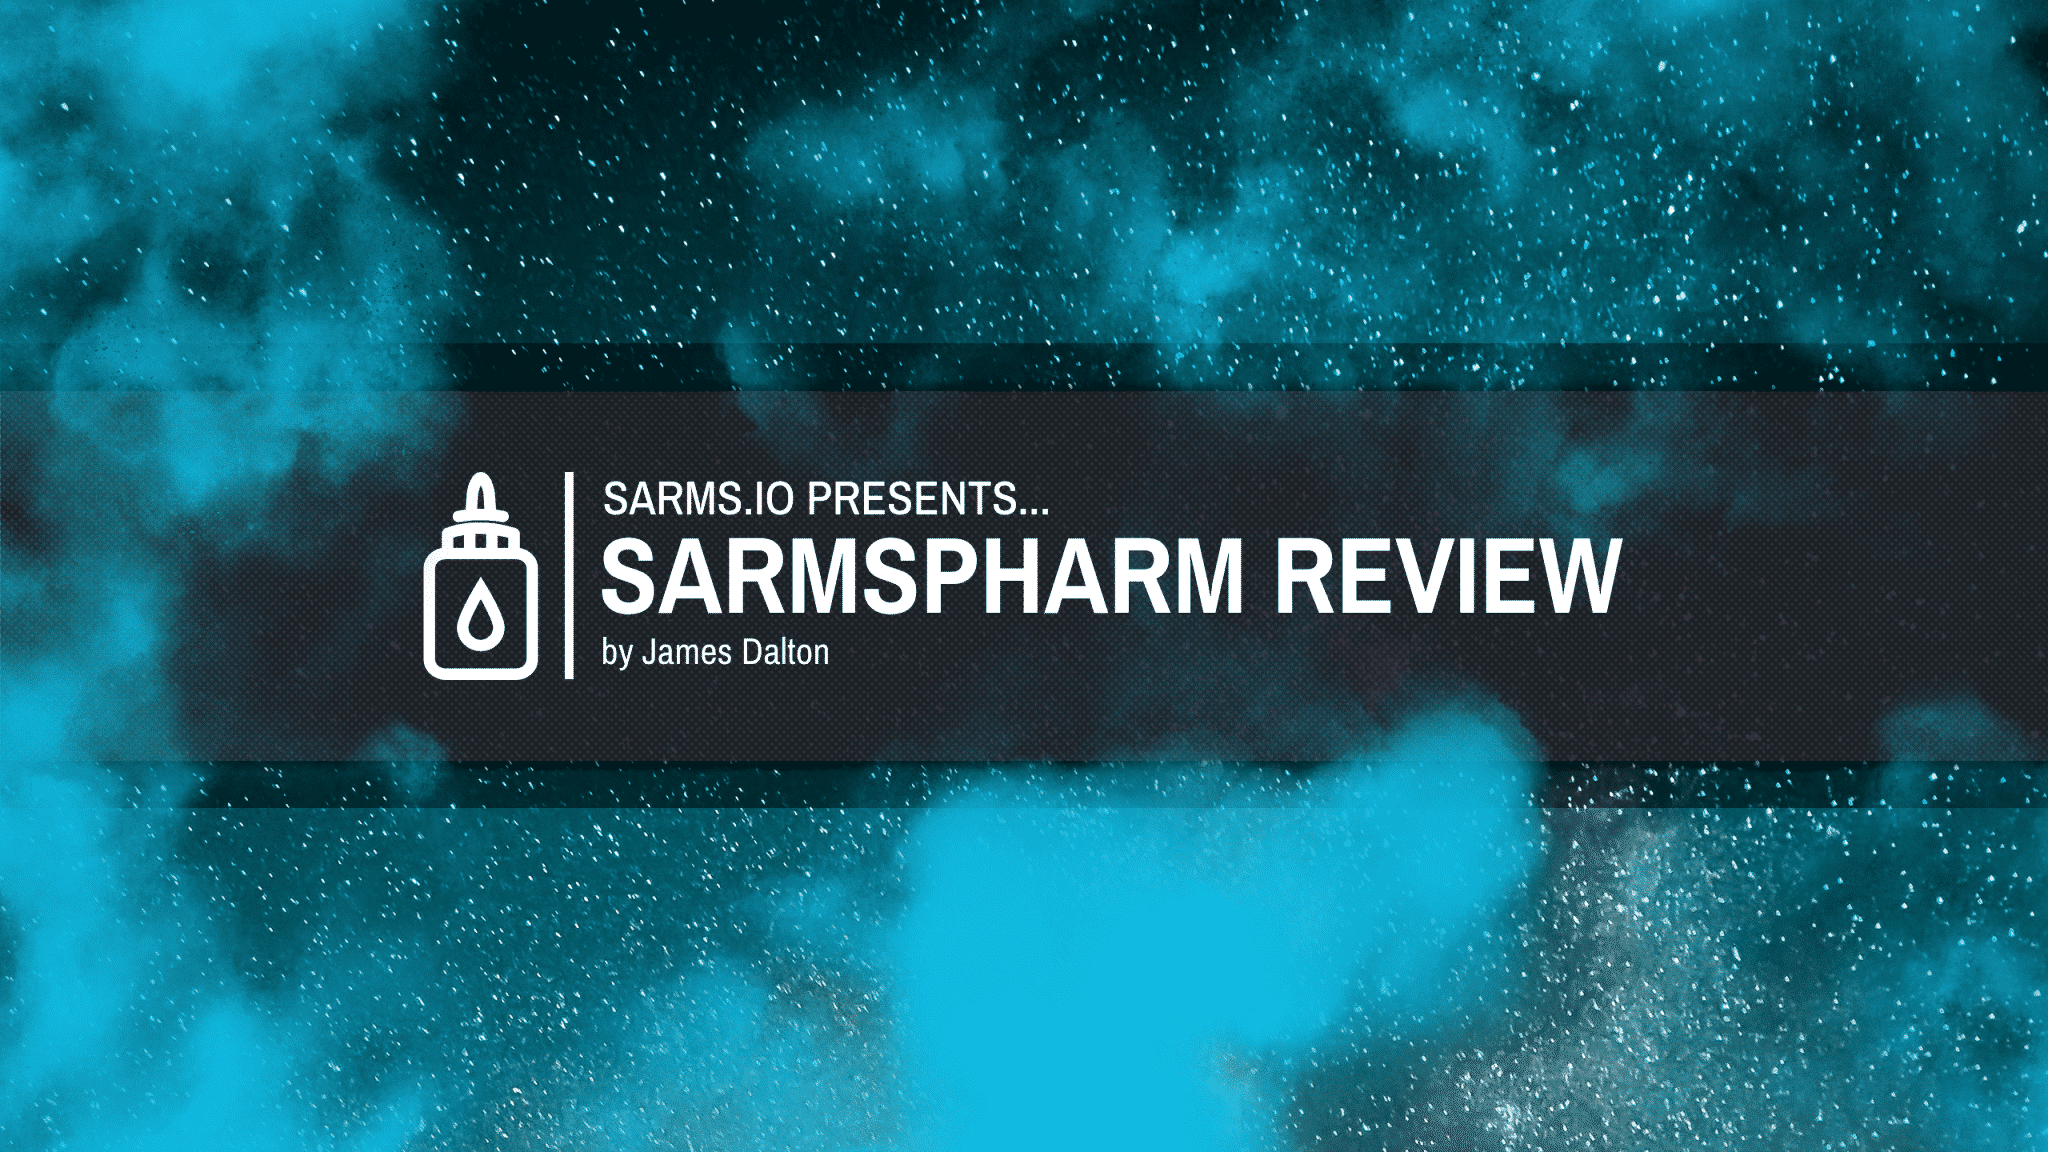 SarmsPharm Review: Are Their SARMs Legit or Bunk? Read This!